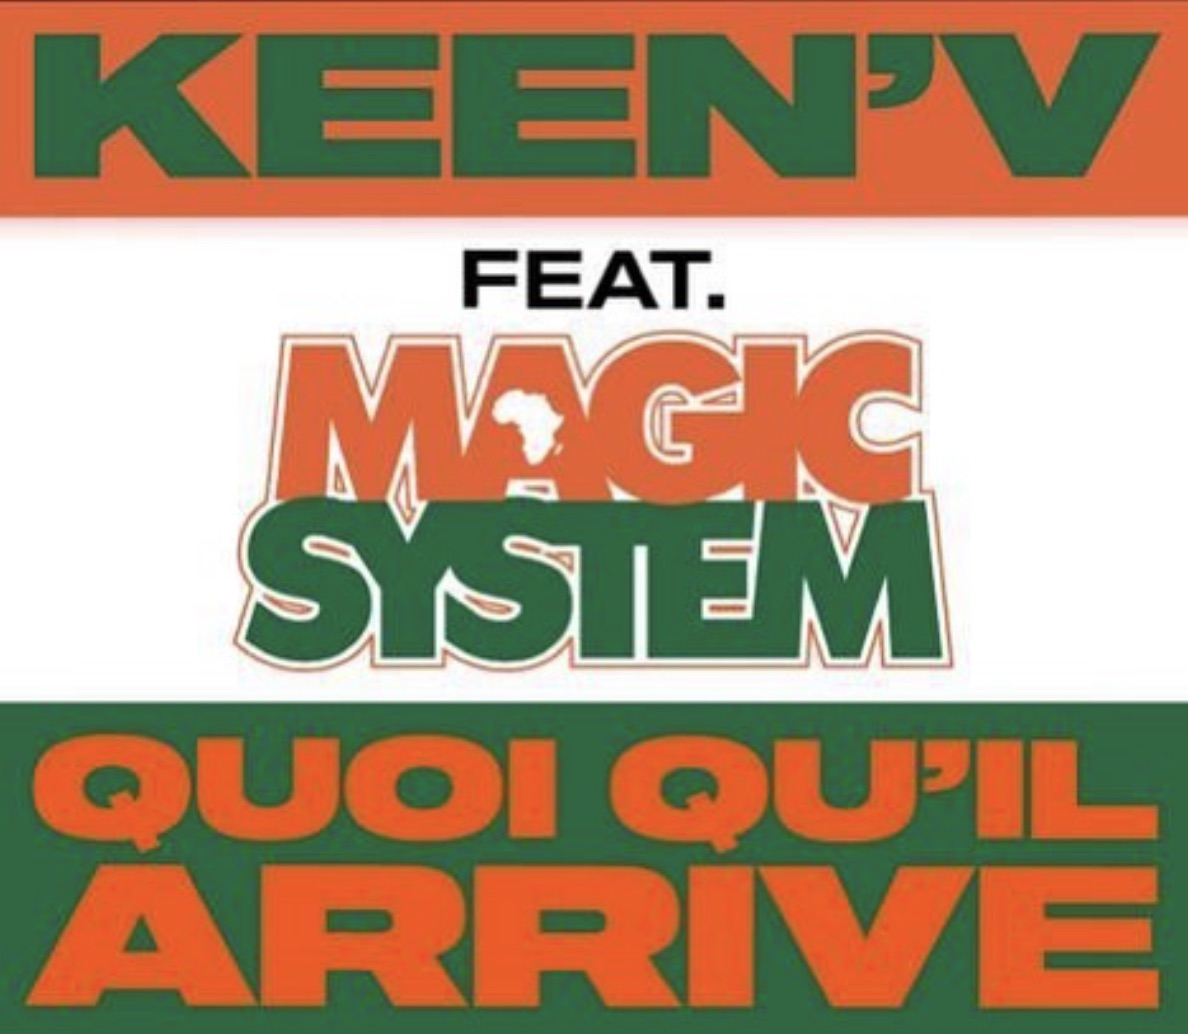 Keen'V - Magic system - Quoi qu'il arrive